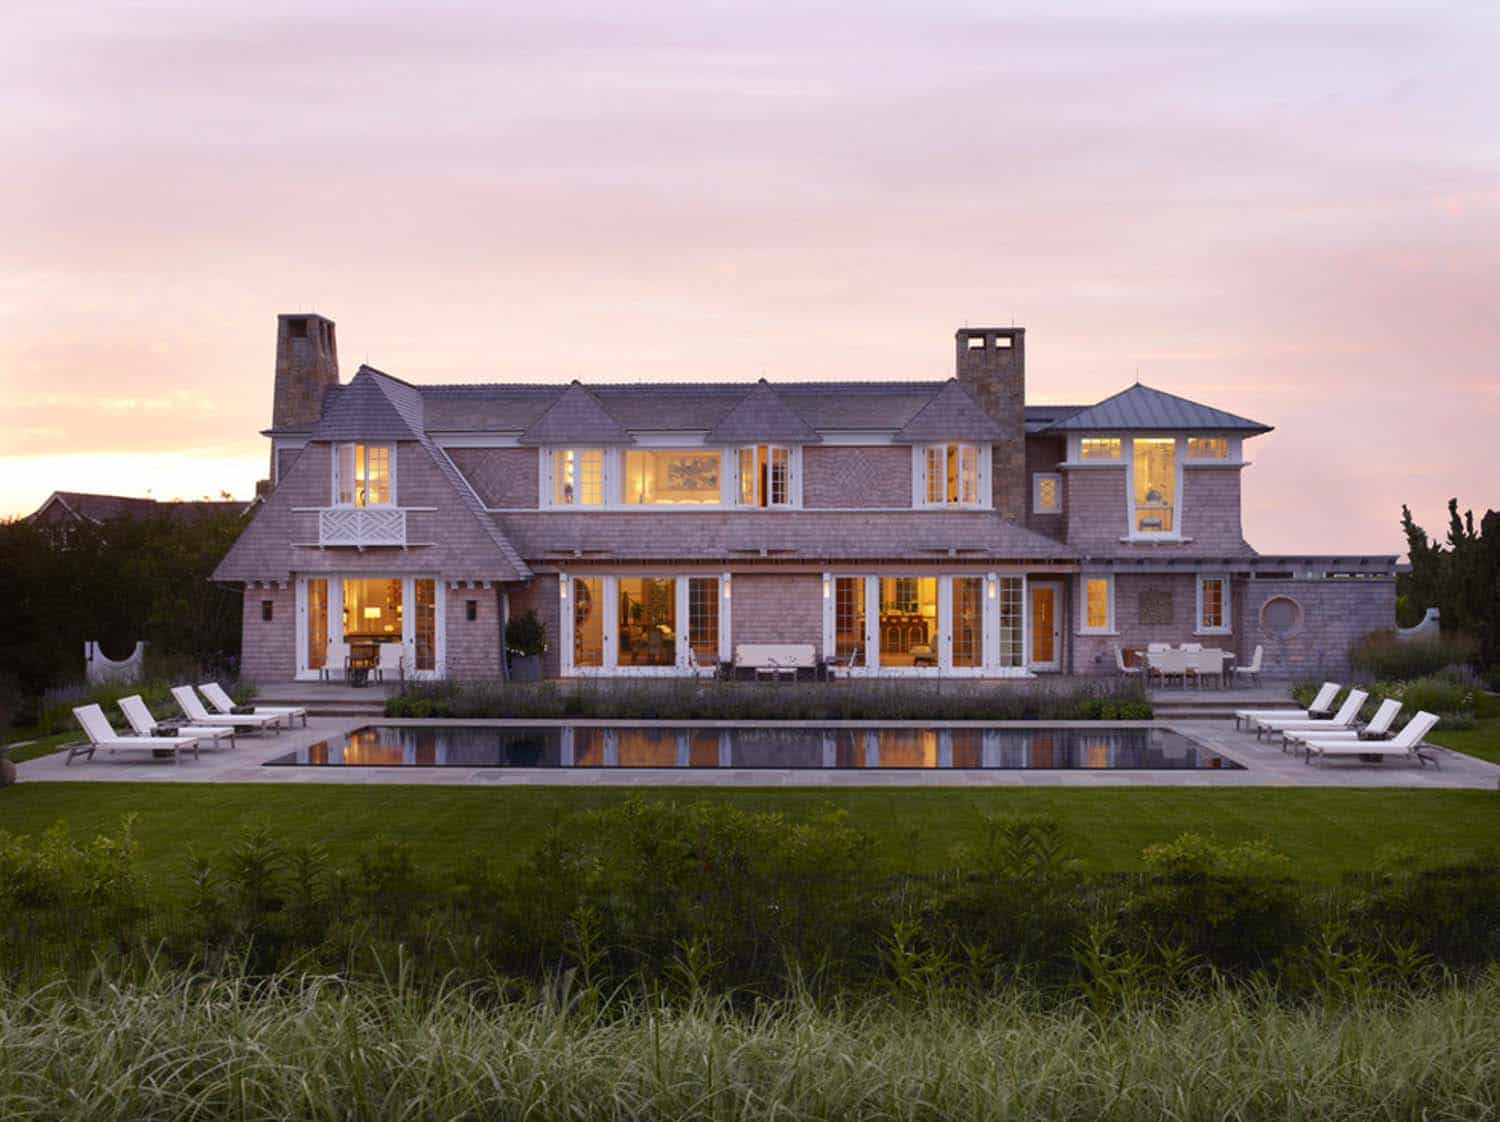 Beachfront hideaway with luxurious yet relaxing atmosphere in Sagaponack